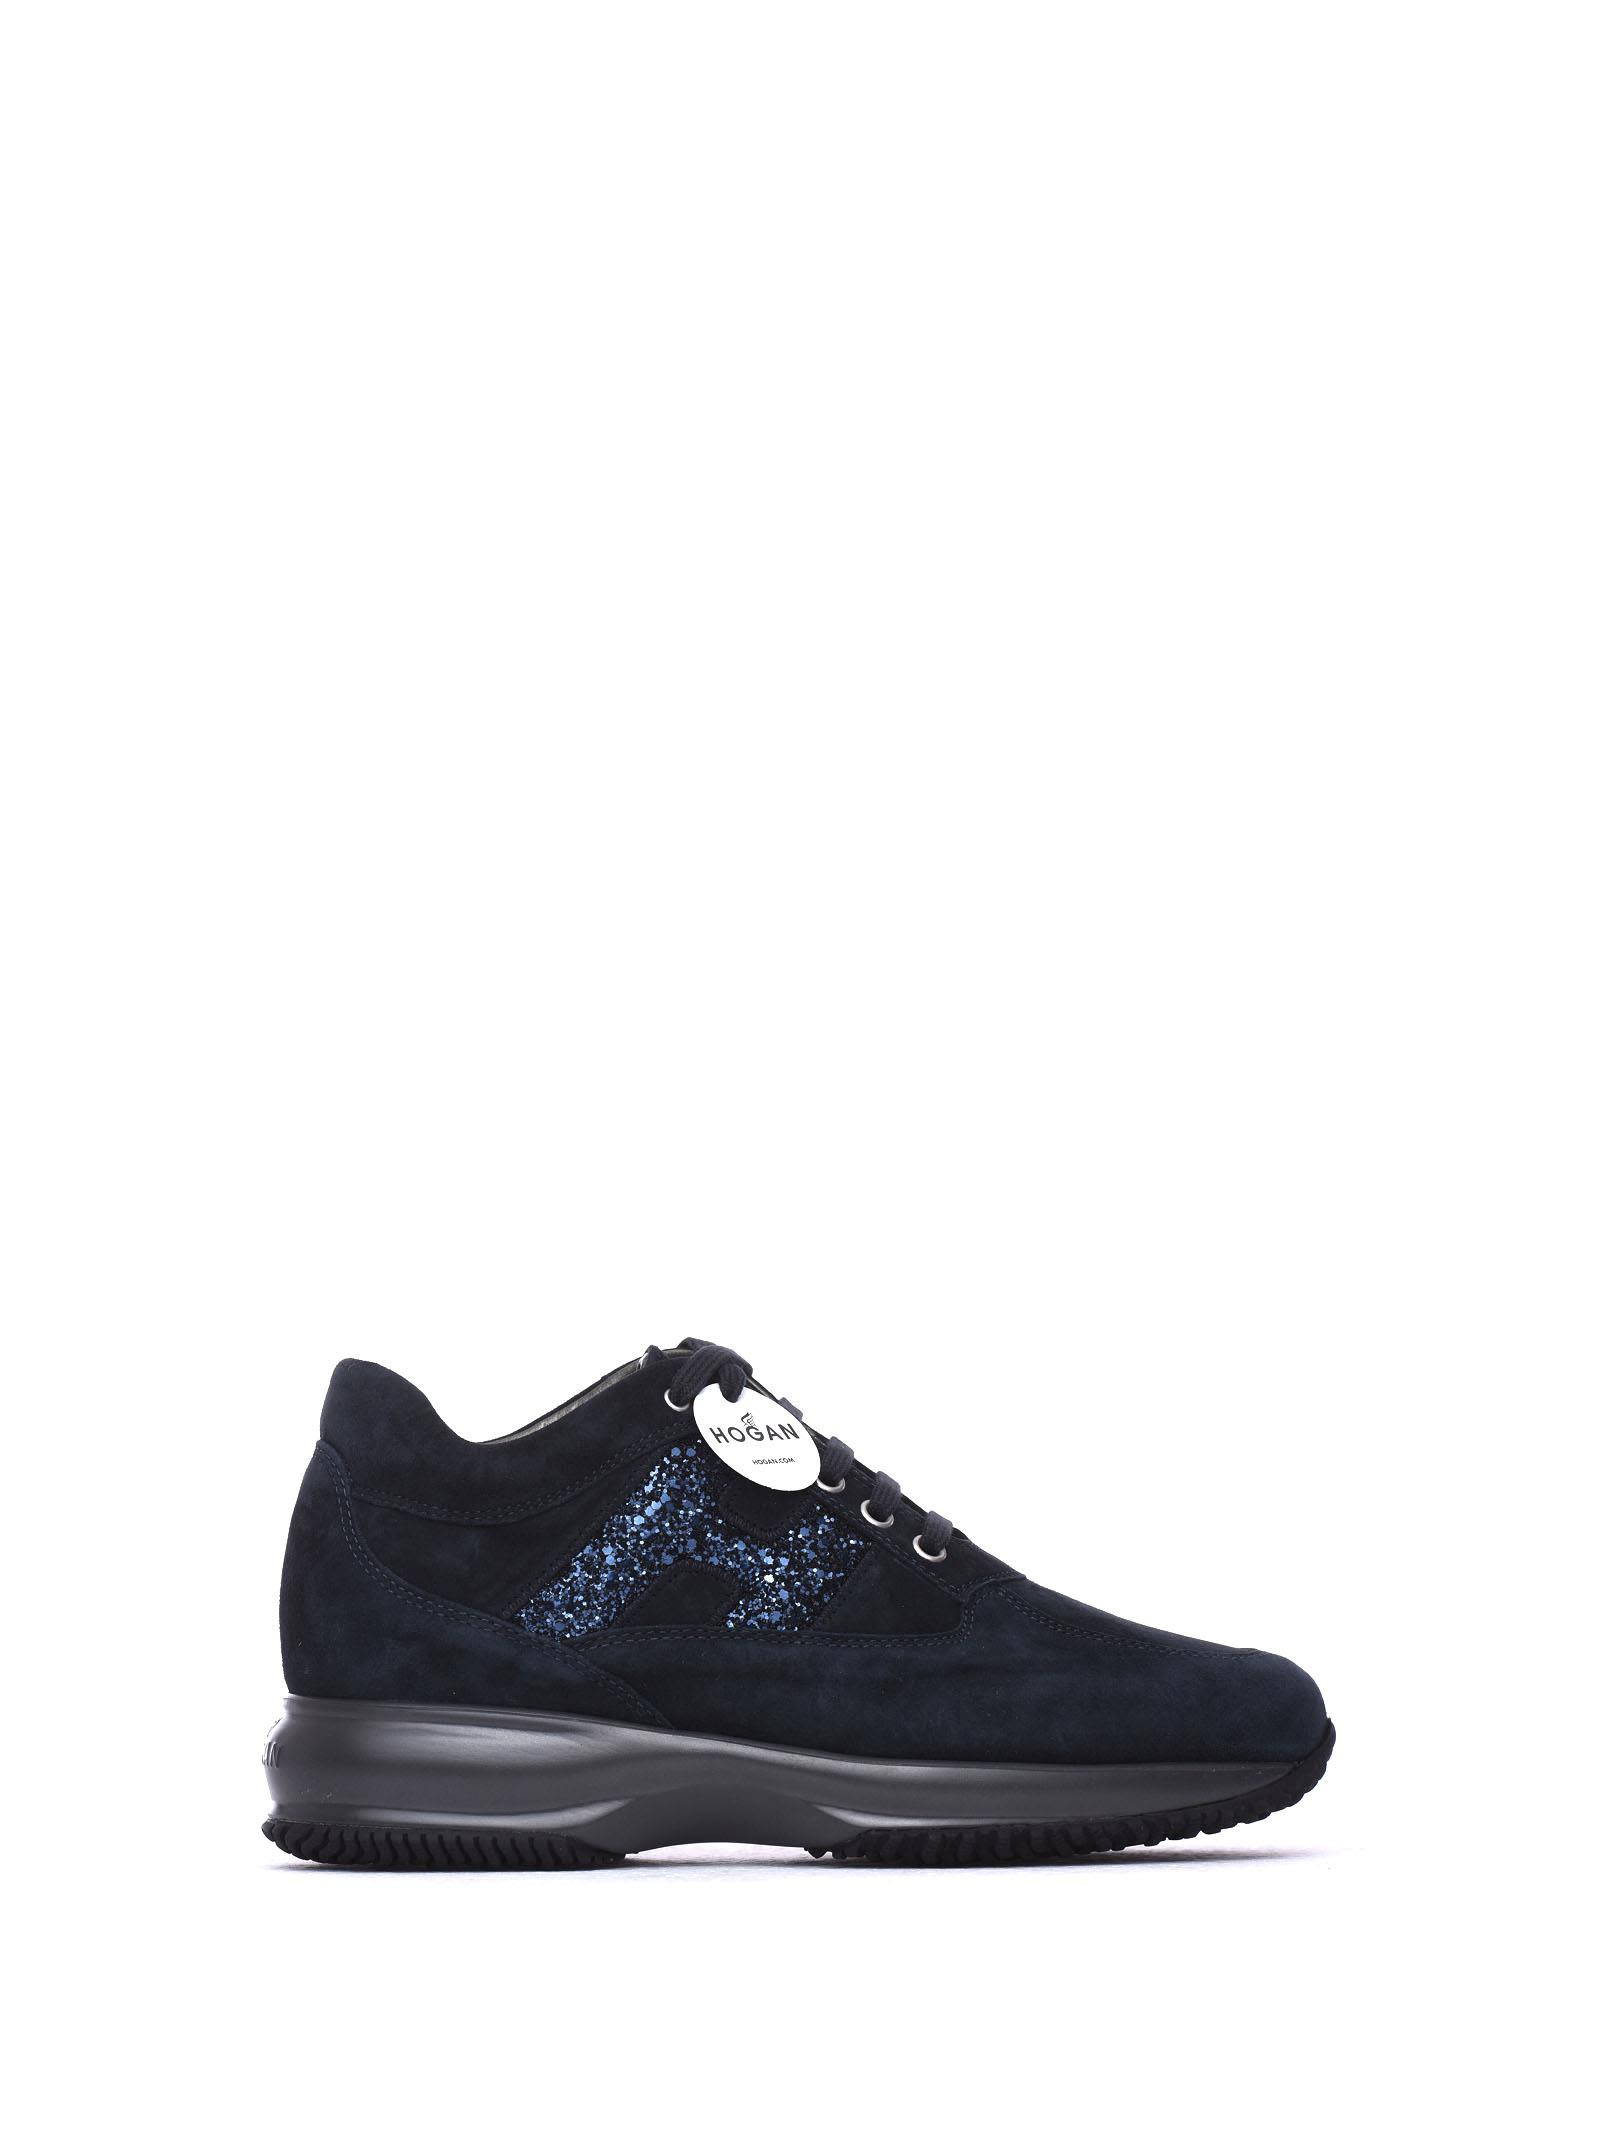 Sneakers Interactive Dark Blue And Glitter